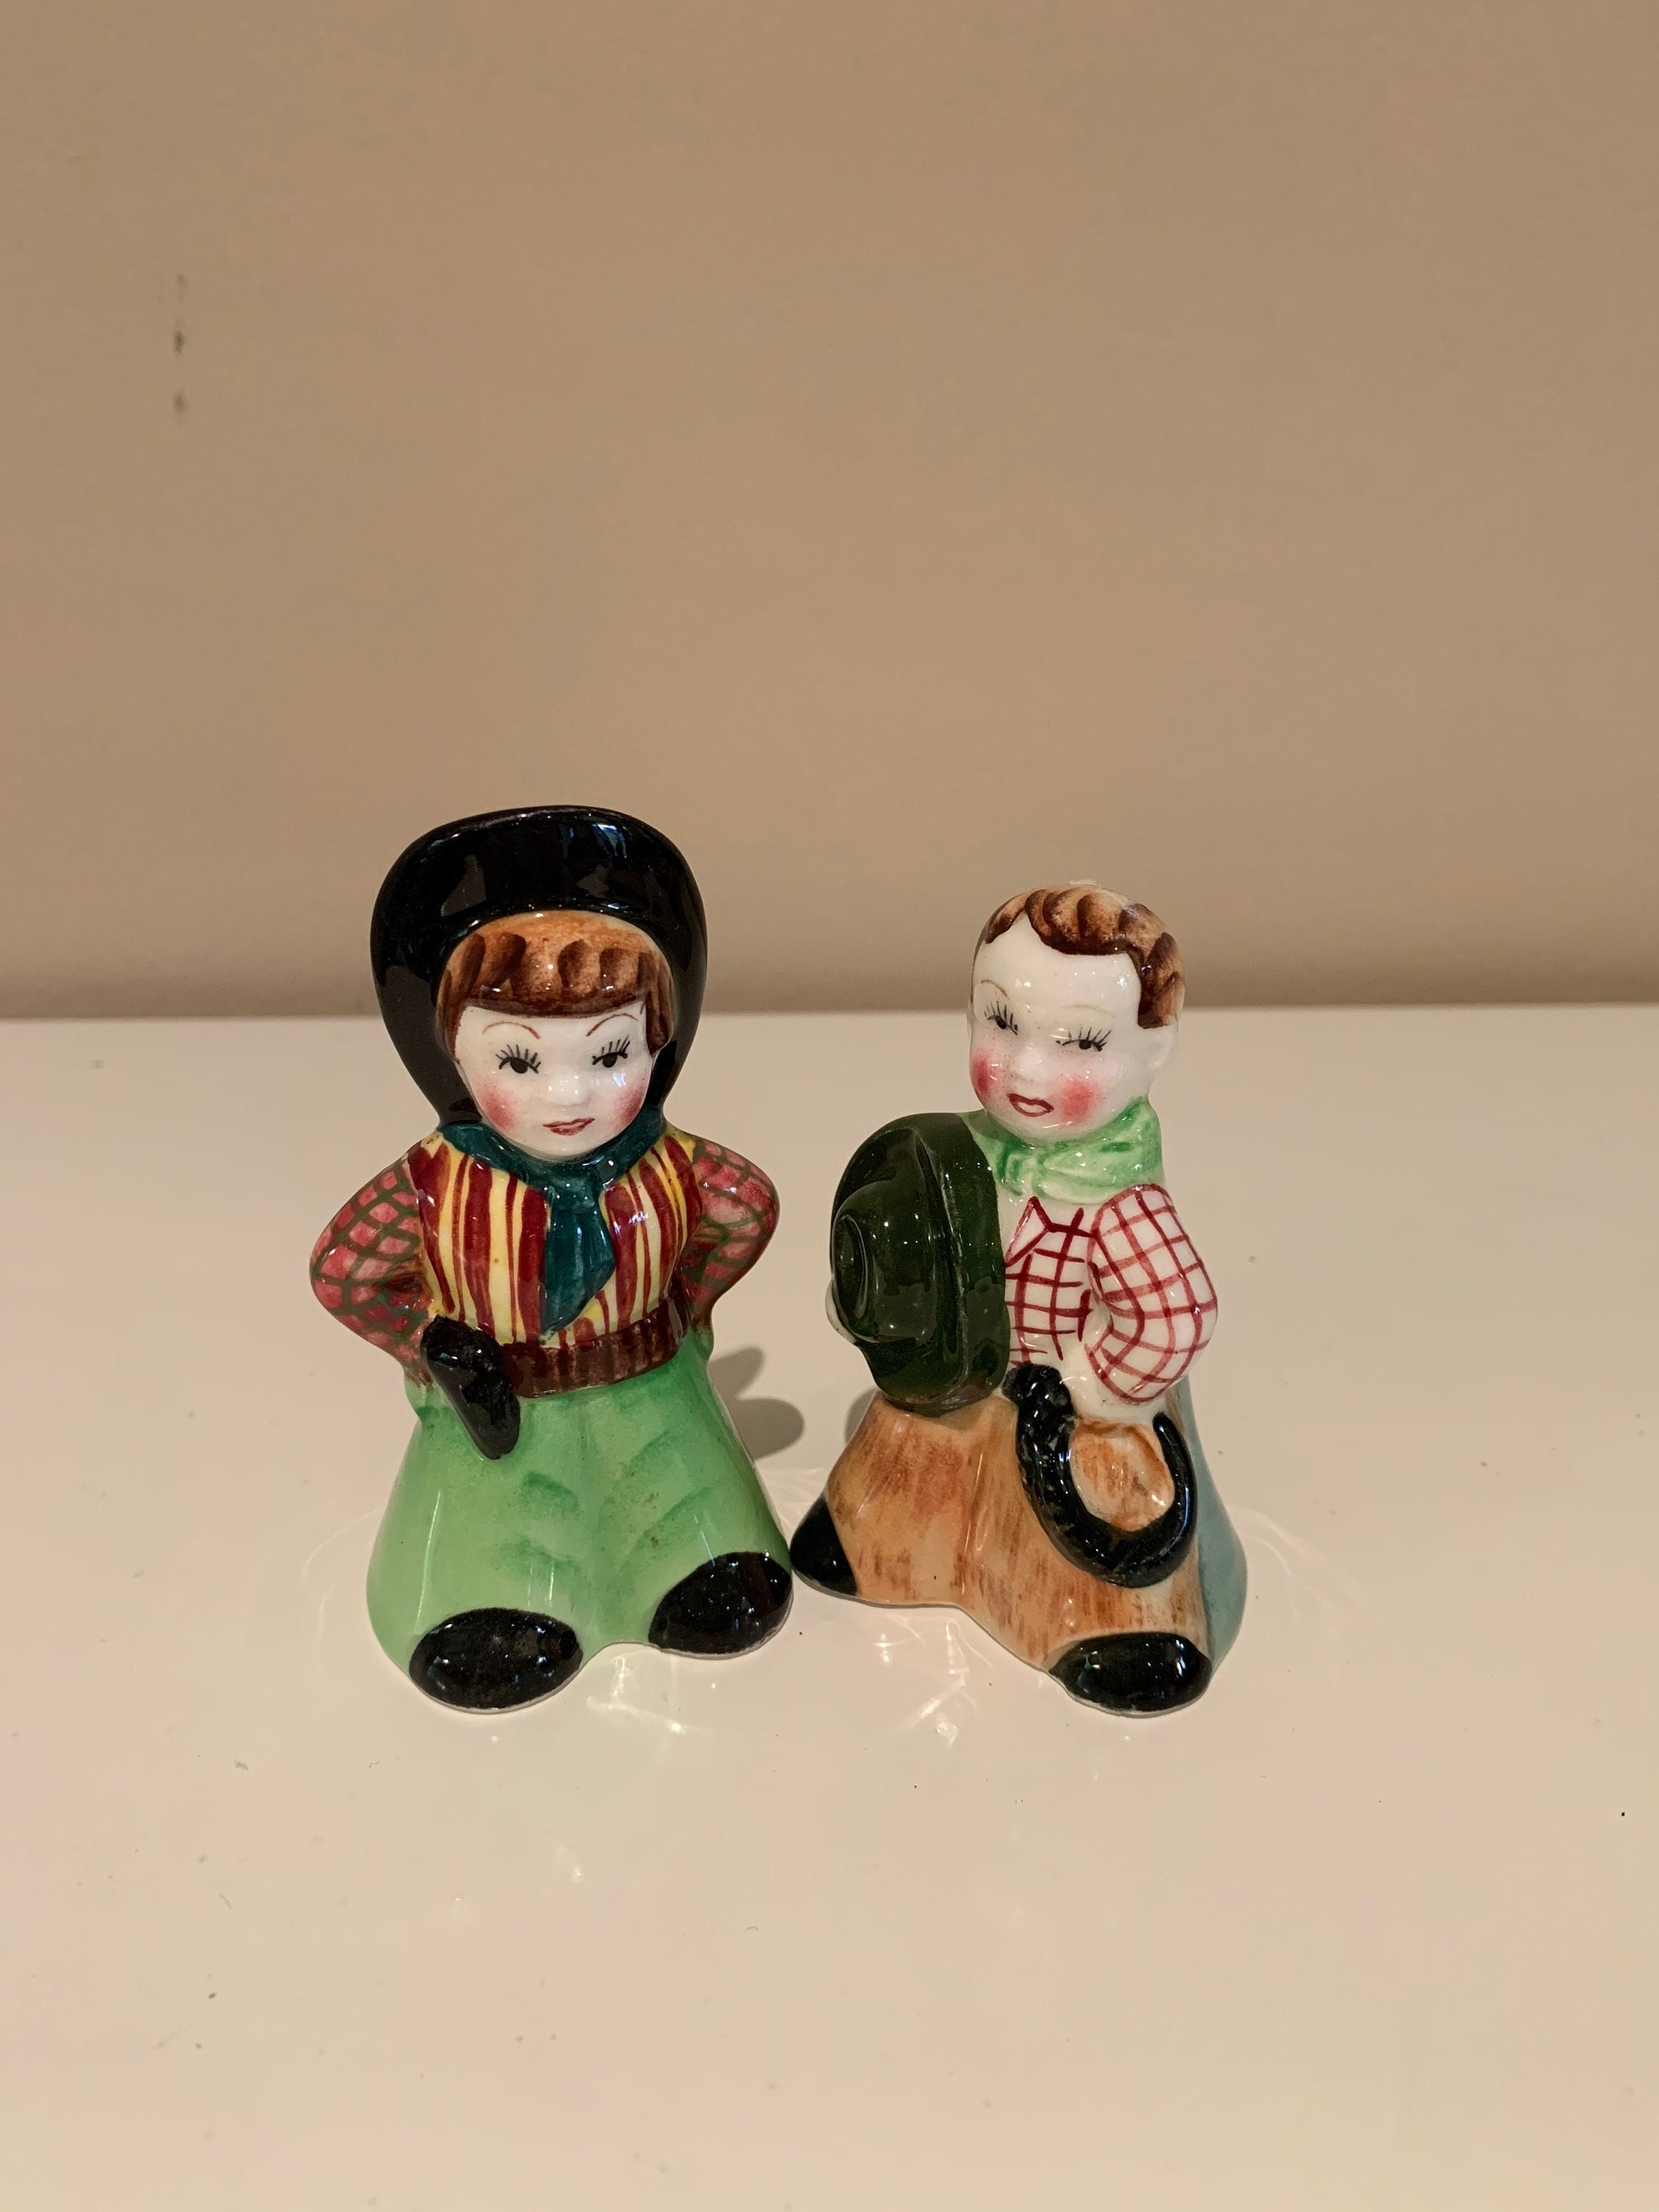 Vintage Cowboy Cowgirl Salt Pepper Shakers Western Calamity Jane and Wild Bill Hickok Cowpoke Shakers